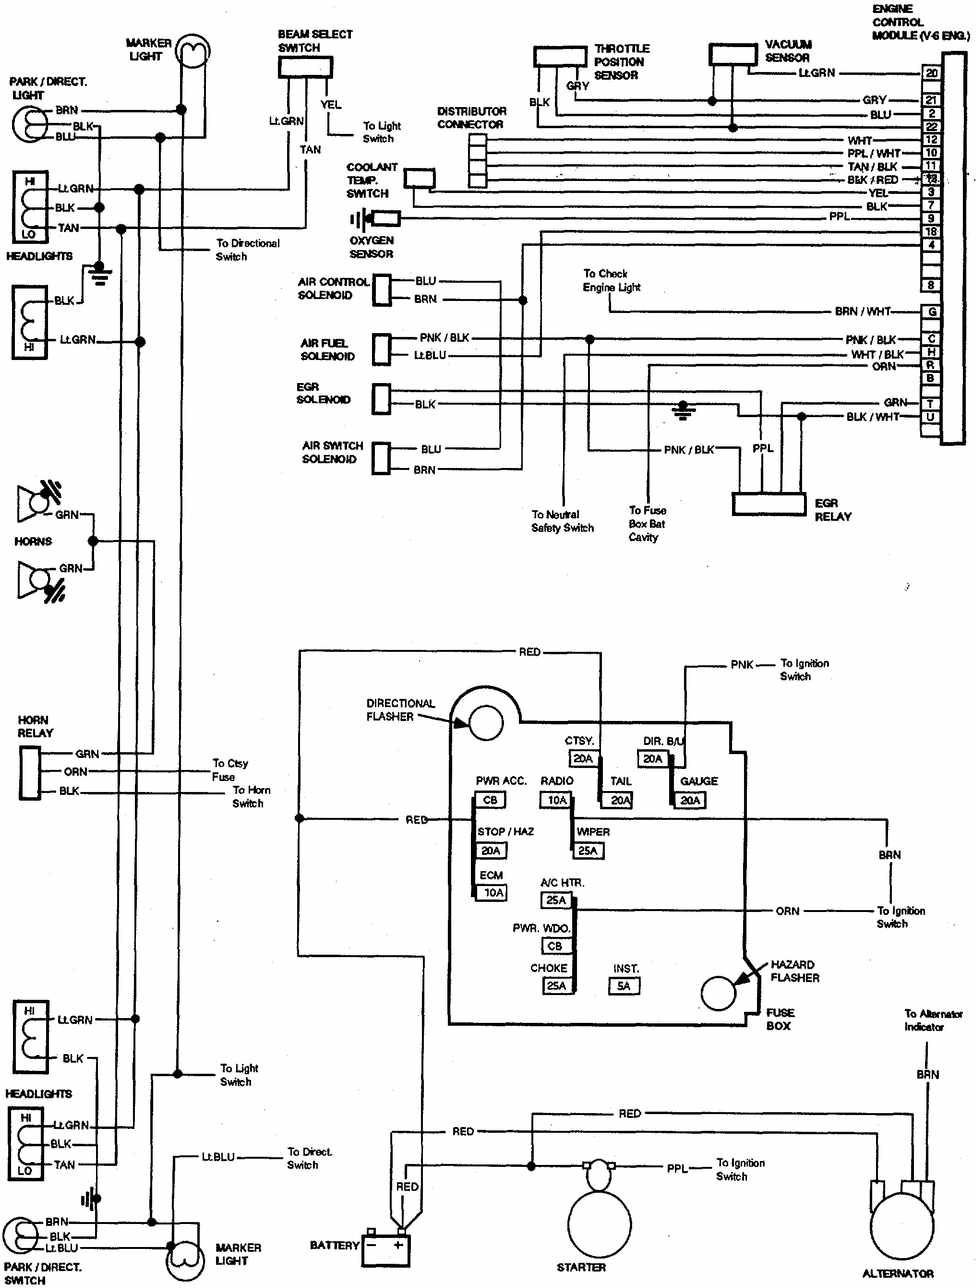 medium resolution of herein we can see the 1981 1987 chevrolet v8 trucks electrical wiring diagram description